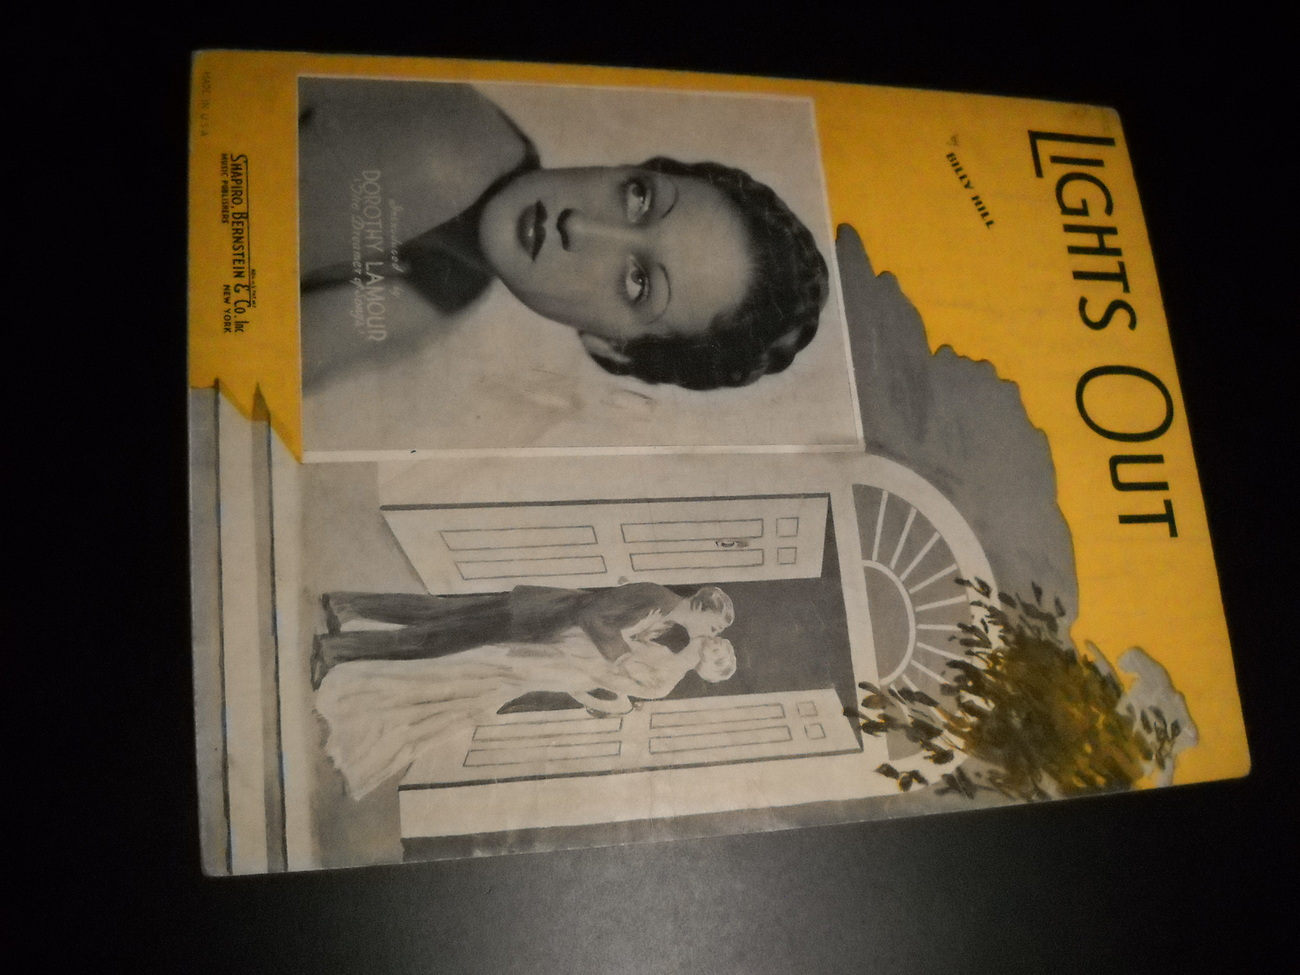 Sheet_music_lights_out_dorothy_lamour_billy_hill_1935_shapiro_bernstein_01